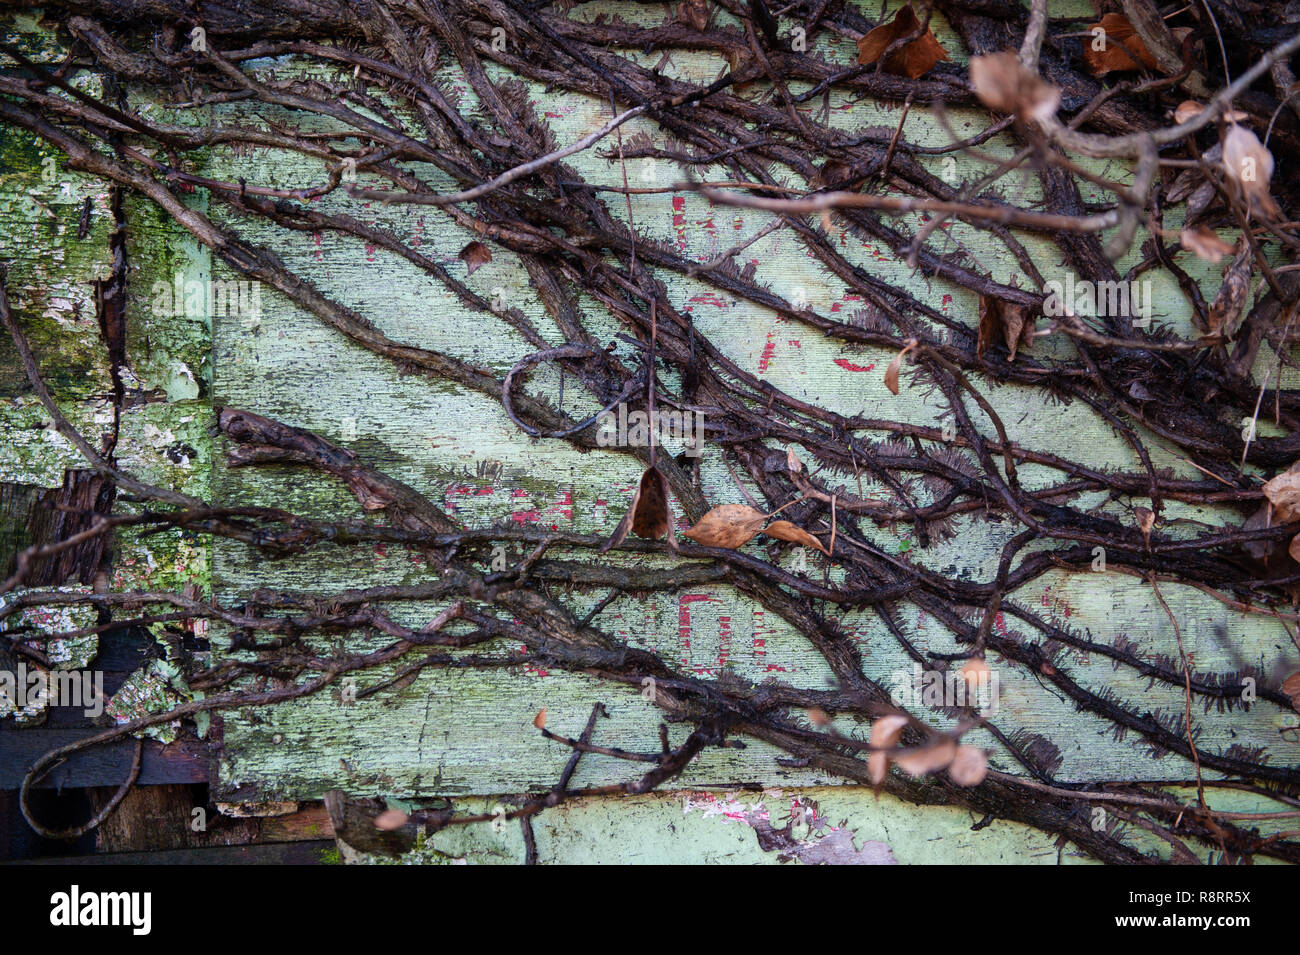 Parasitic growth with tendrils on old wooden fence. - Stock Image